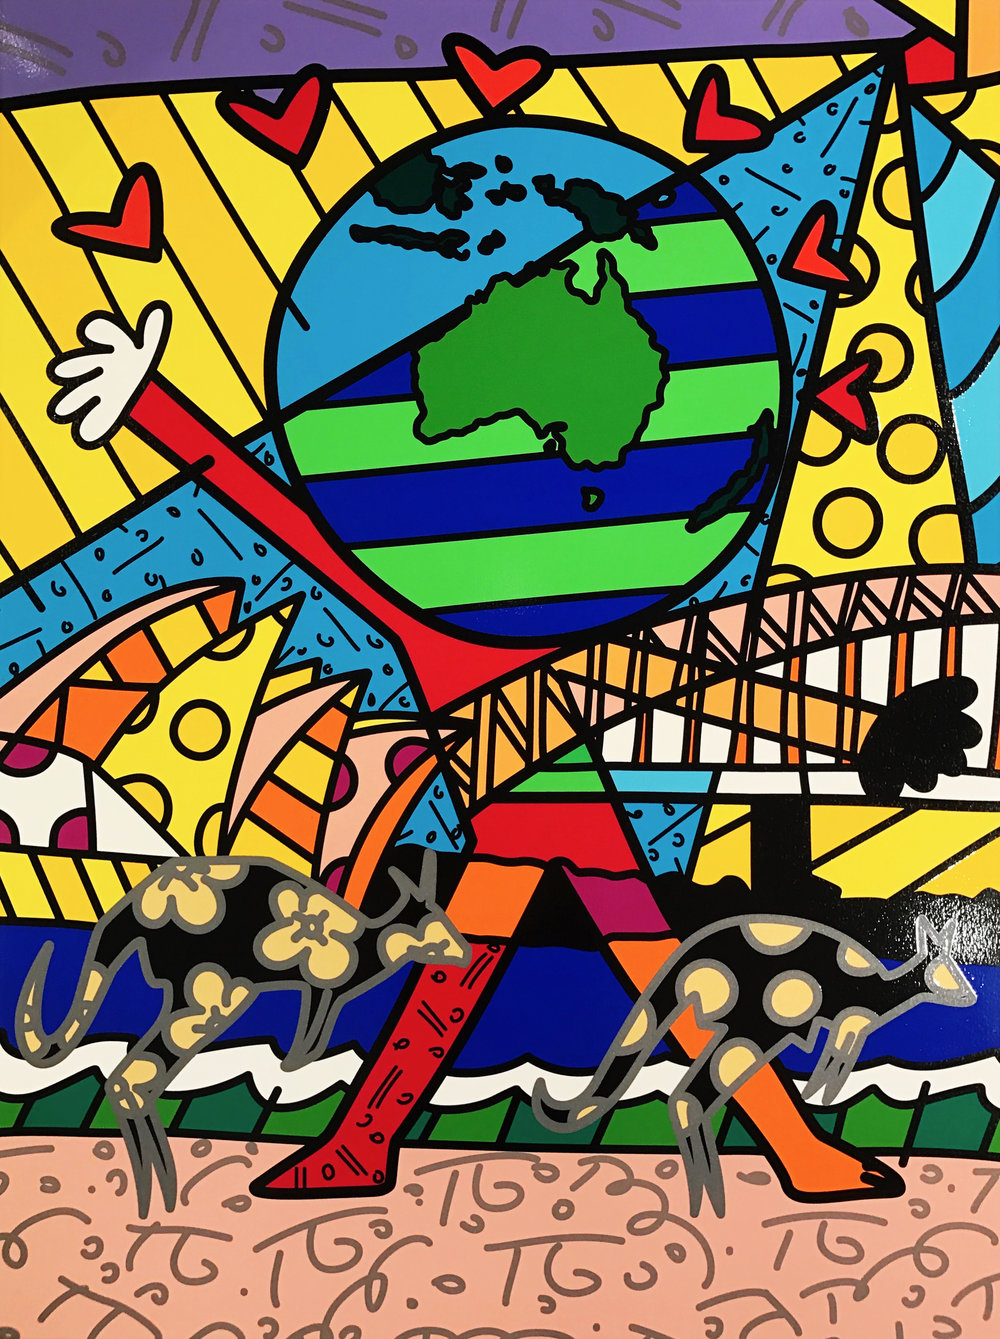 """Globe Generation Series – Australia""  Serigraph, Limited edition, No. 27 of 50  101.6 x 76.2 cm  2015"